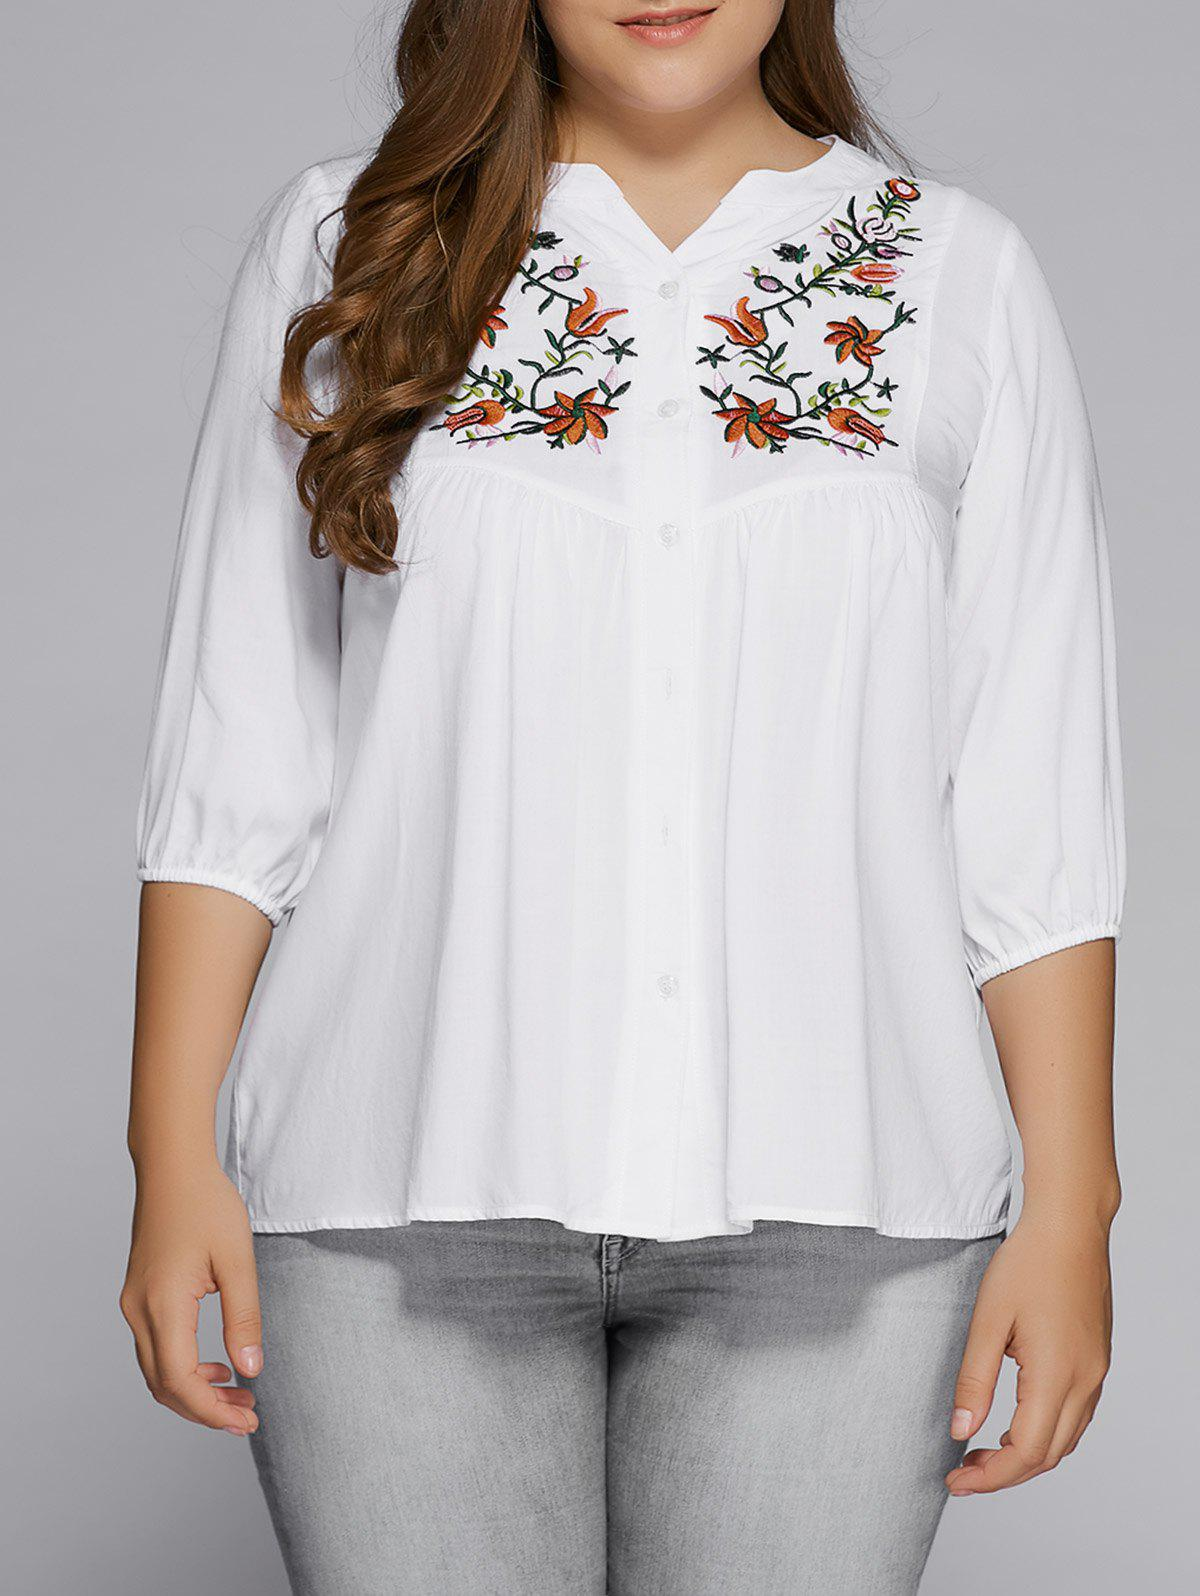 Plus Size Button Fly Floral Embroidered Top - WHITE XL